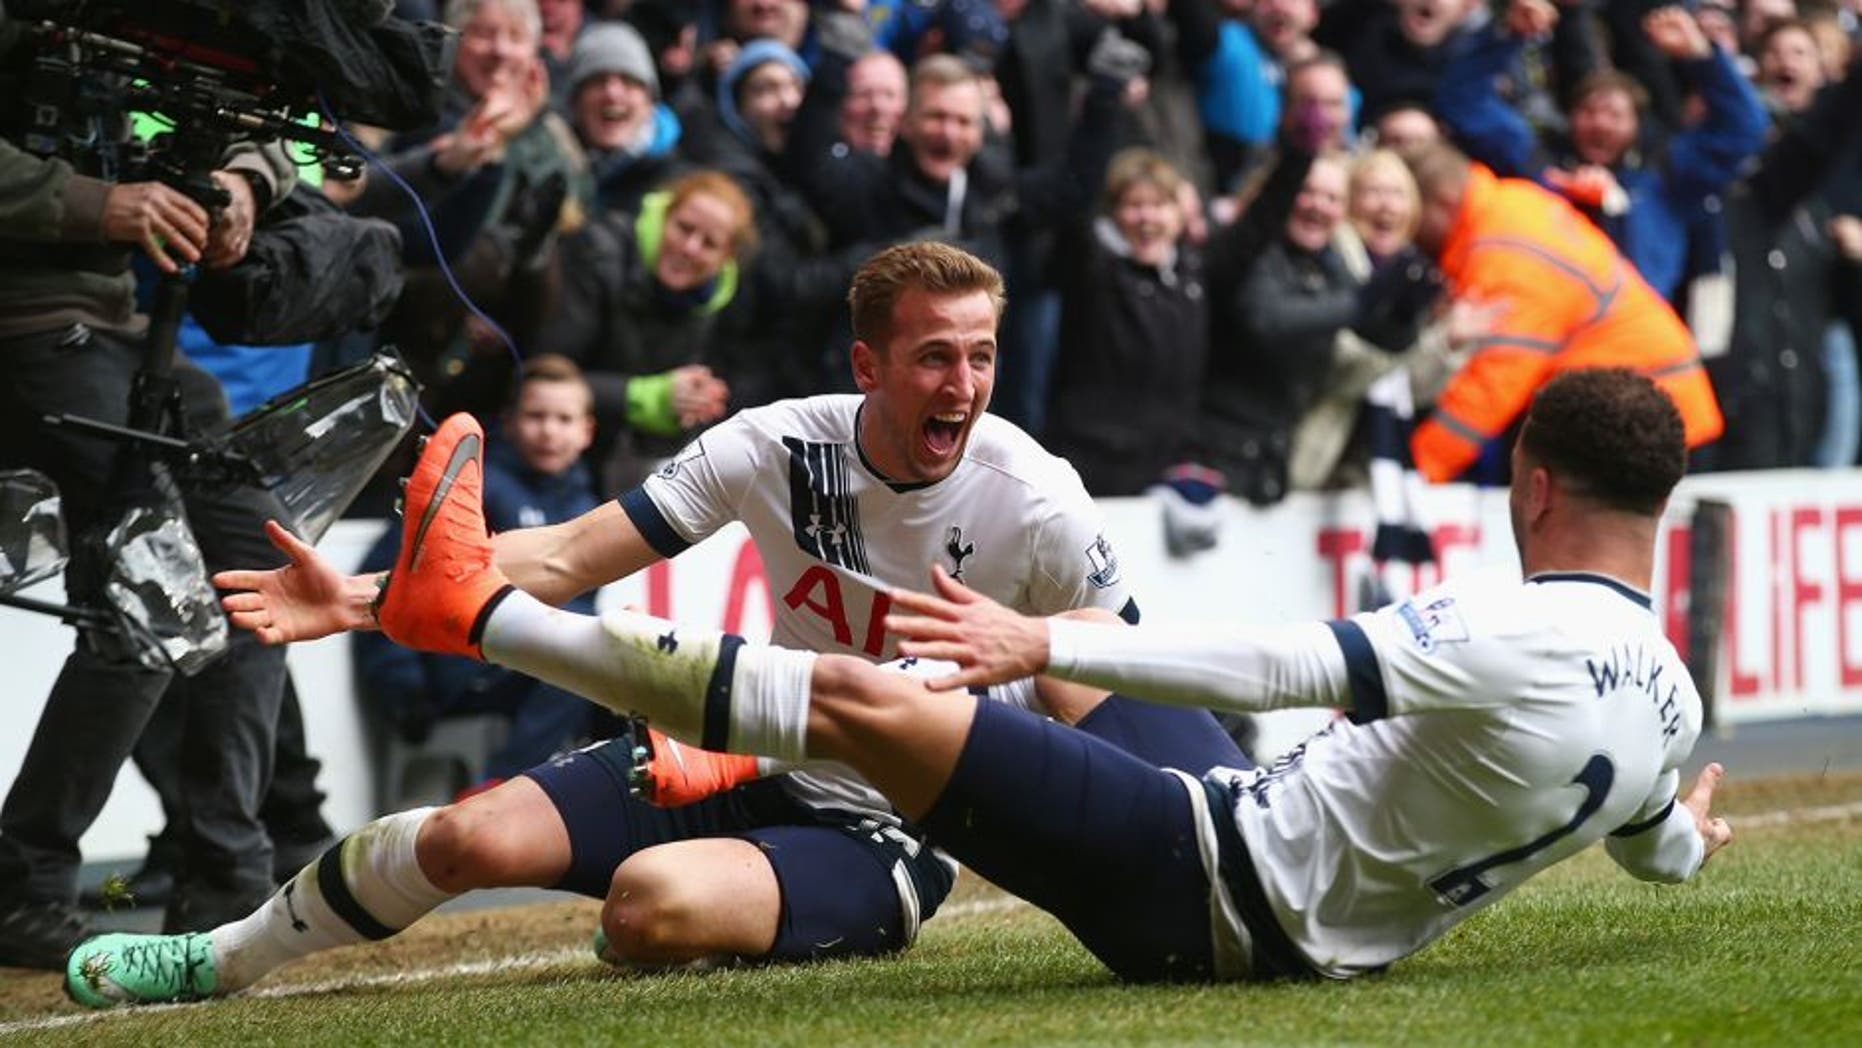 LONDON, ENGLAND - MARCH 05: Harry Kane (L) of Tottenham Hotspur celebrates scoring his team's second goal with his team mate Kyle Walker (R) during the Barclays Premier League match between Tottenham Hotspur and Arsenal at White Hart Lane on March 5, 2016 in London, England. (Photo by Clive Rose/Getty Images)